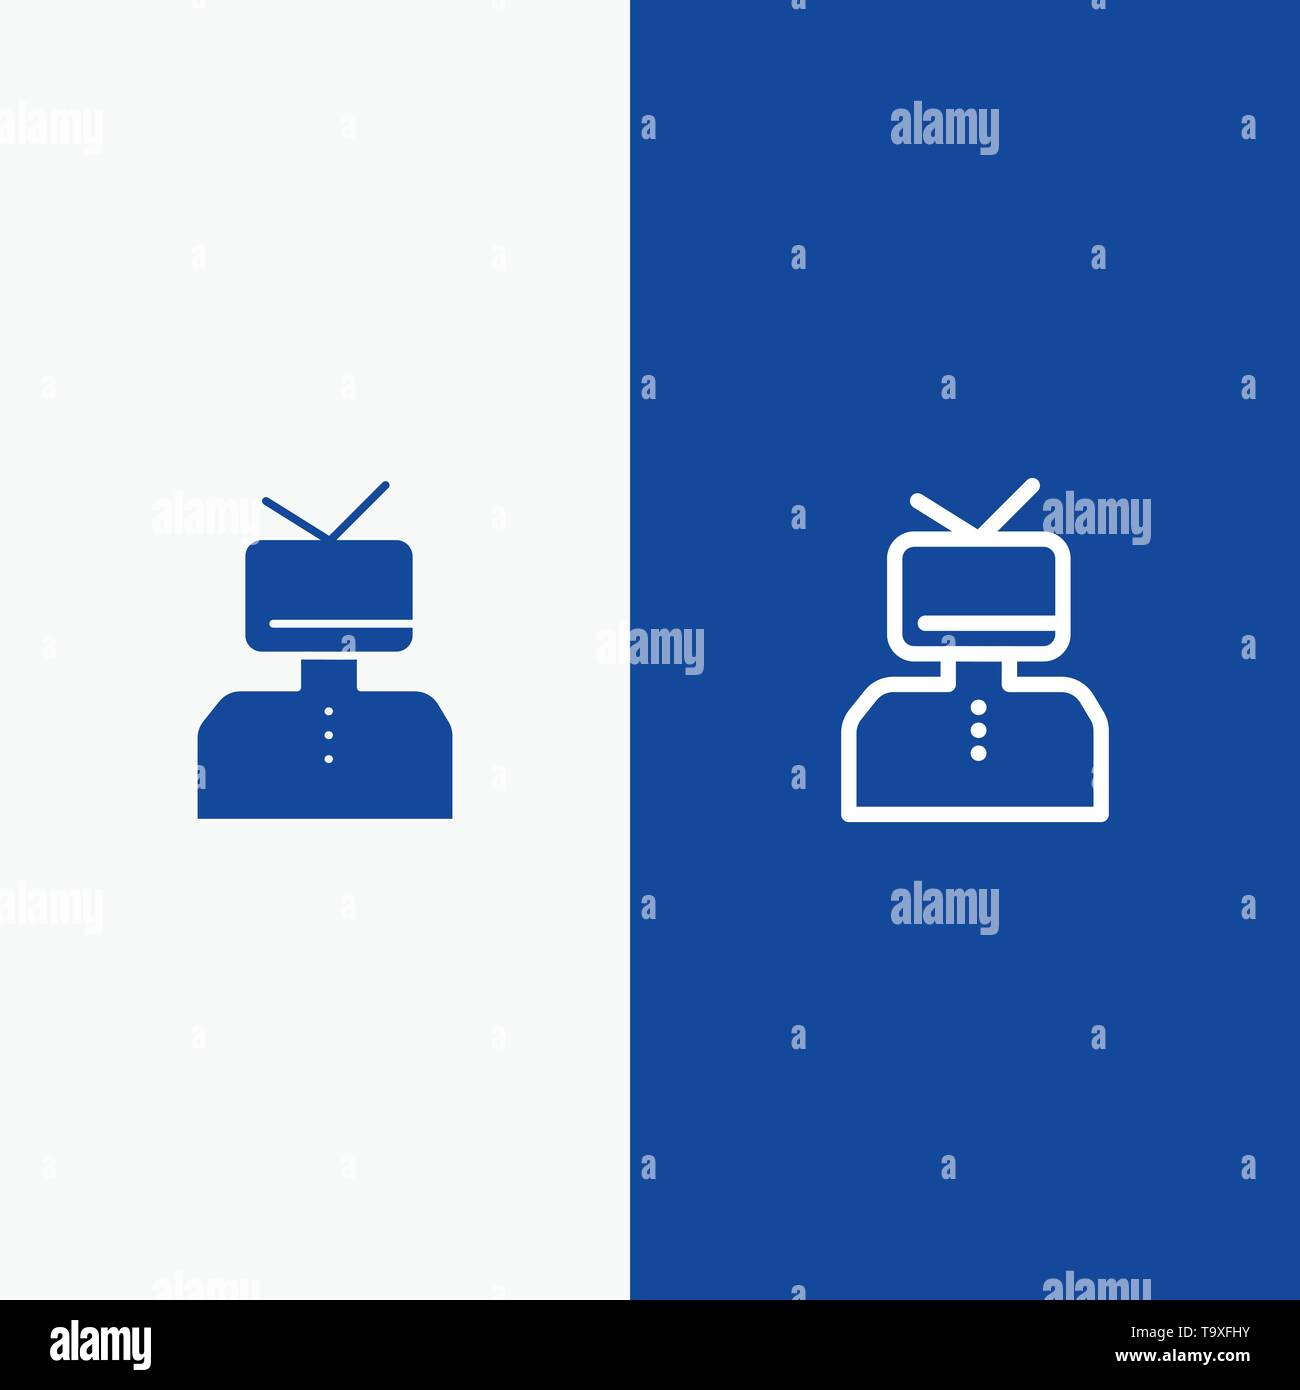 Affirmation, Affirmations, Esteem, Happy, Person Line and Glyph Solid icon Blue banner Line and Glyph Solid icon Blue banner - Stock Image